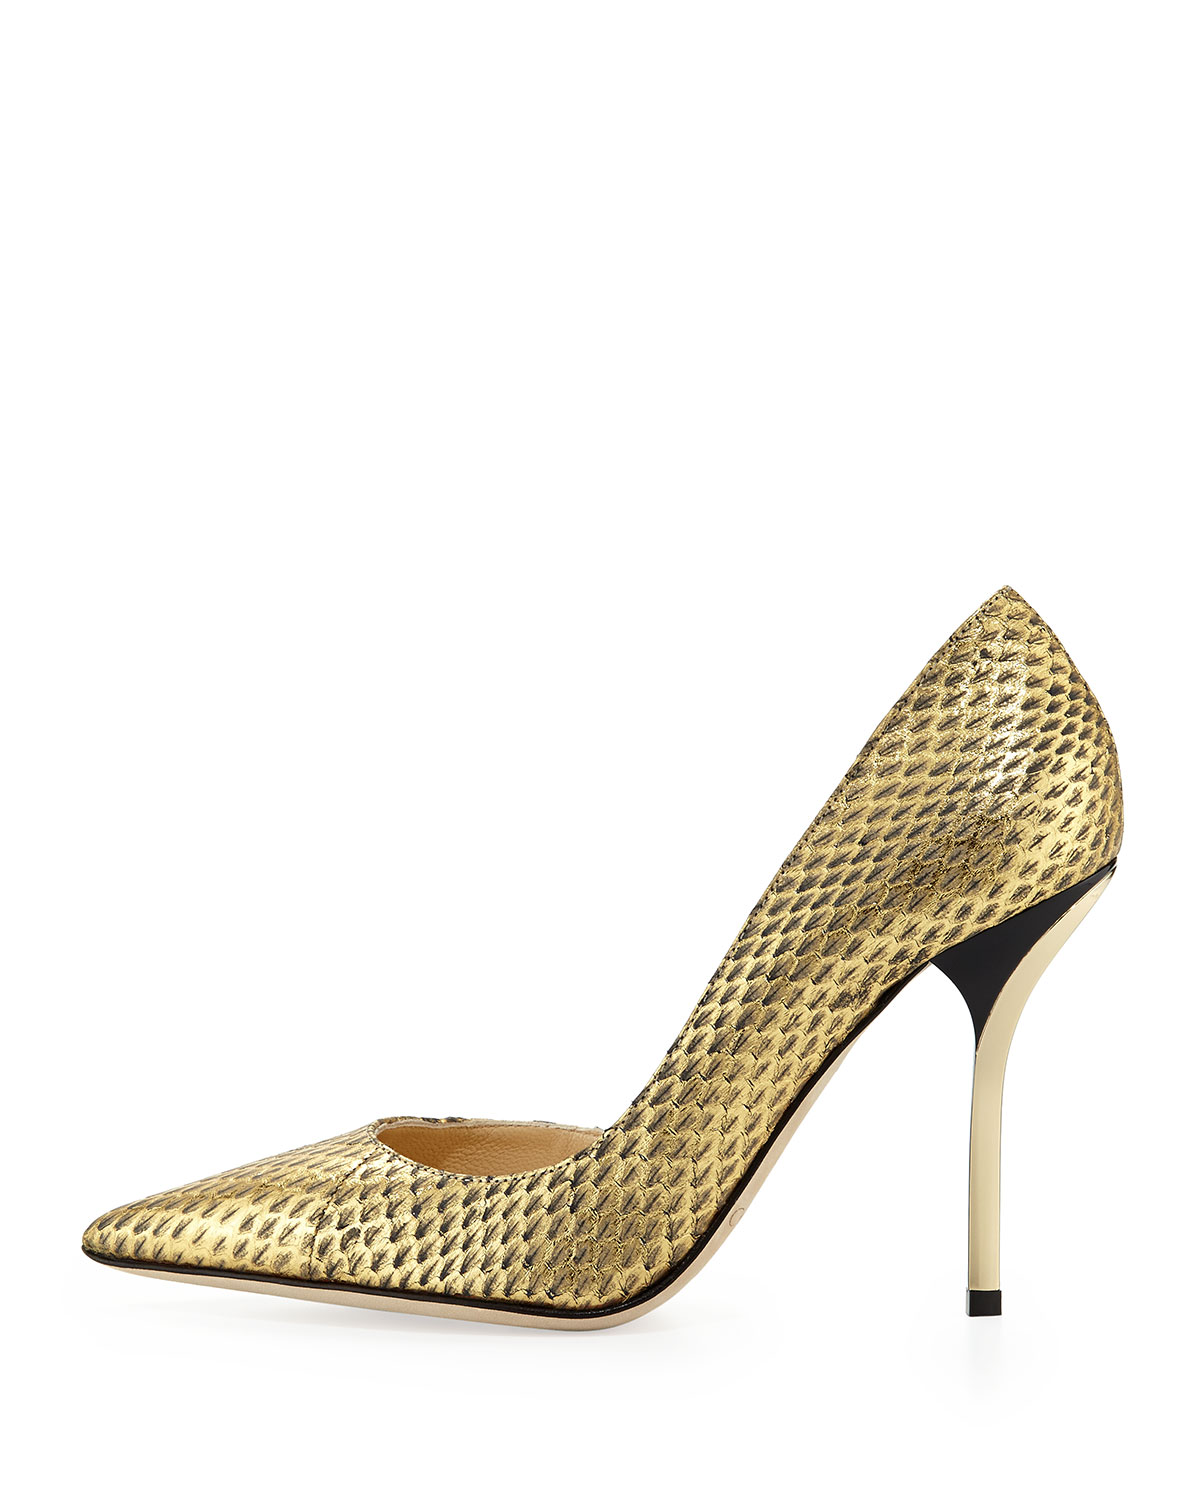 Willis Snake Half dOrsay Pump, Gold